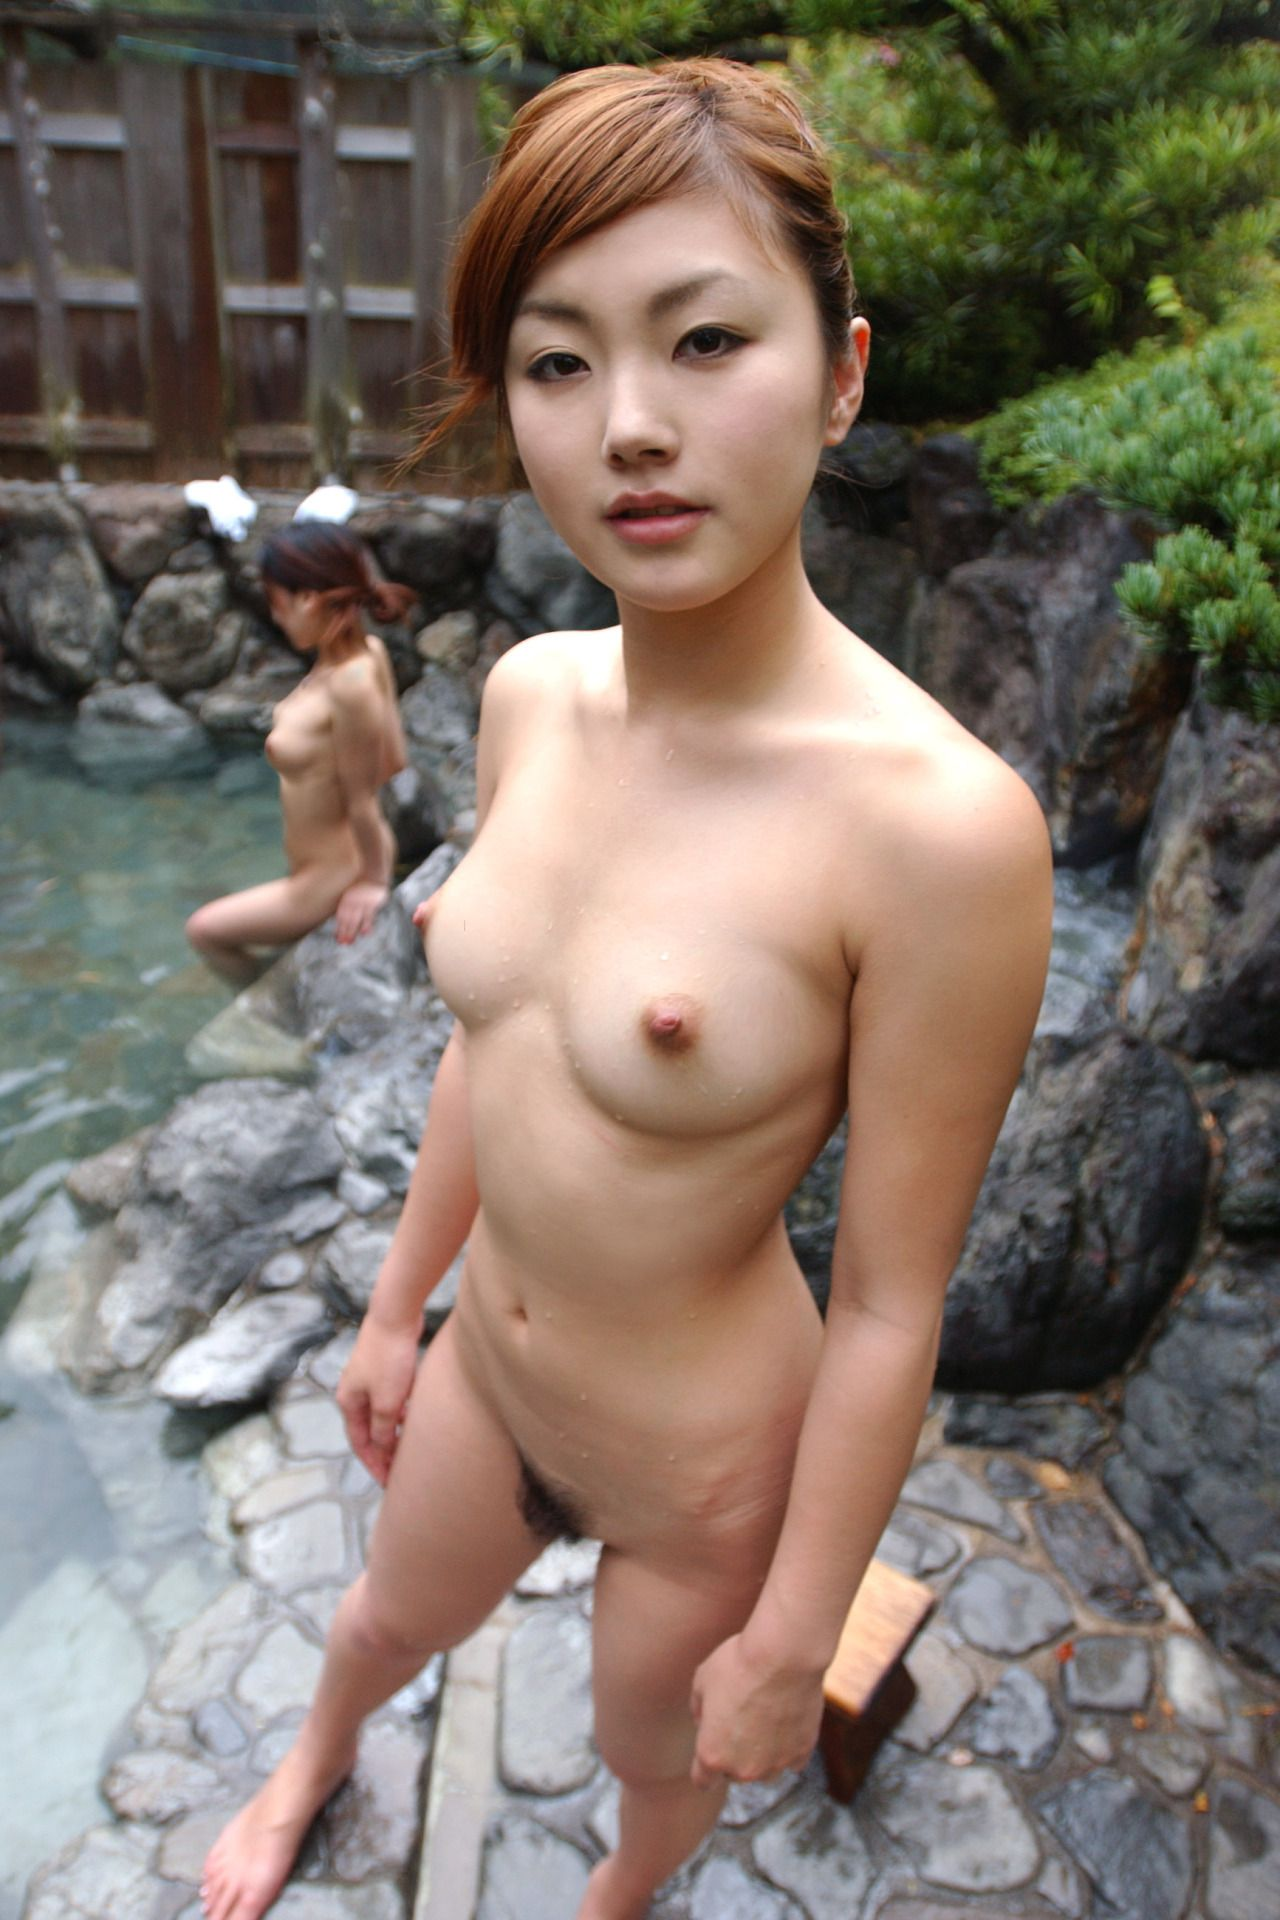 Beautiful Japanese Girl Nude Taking A Bath At An Onsen -6041